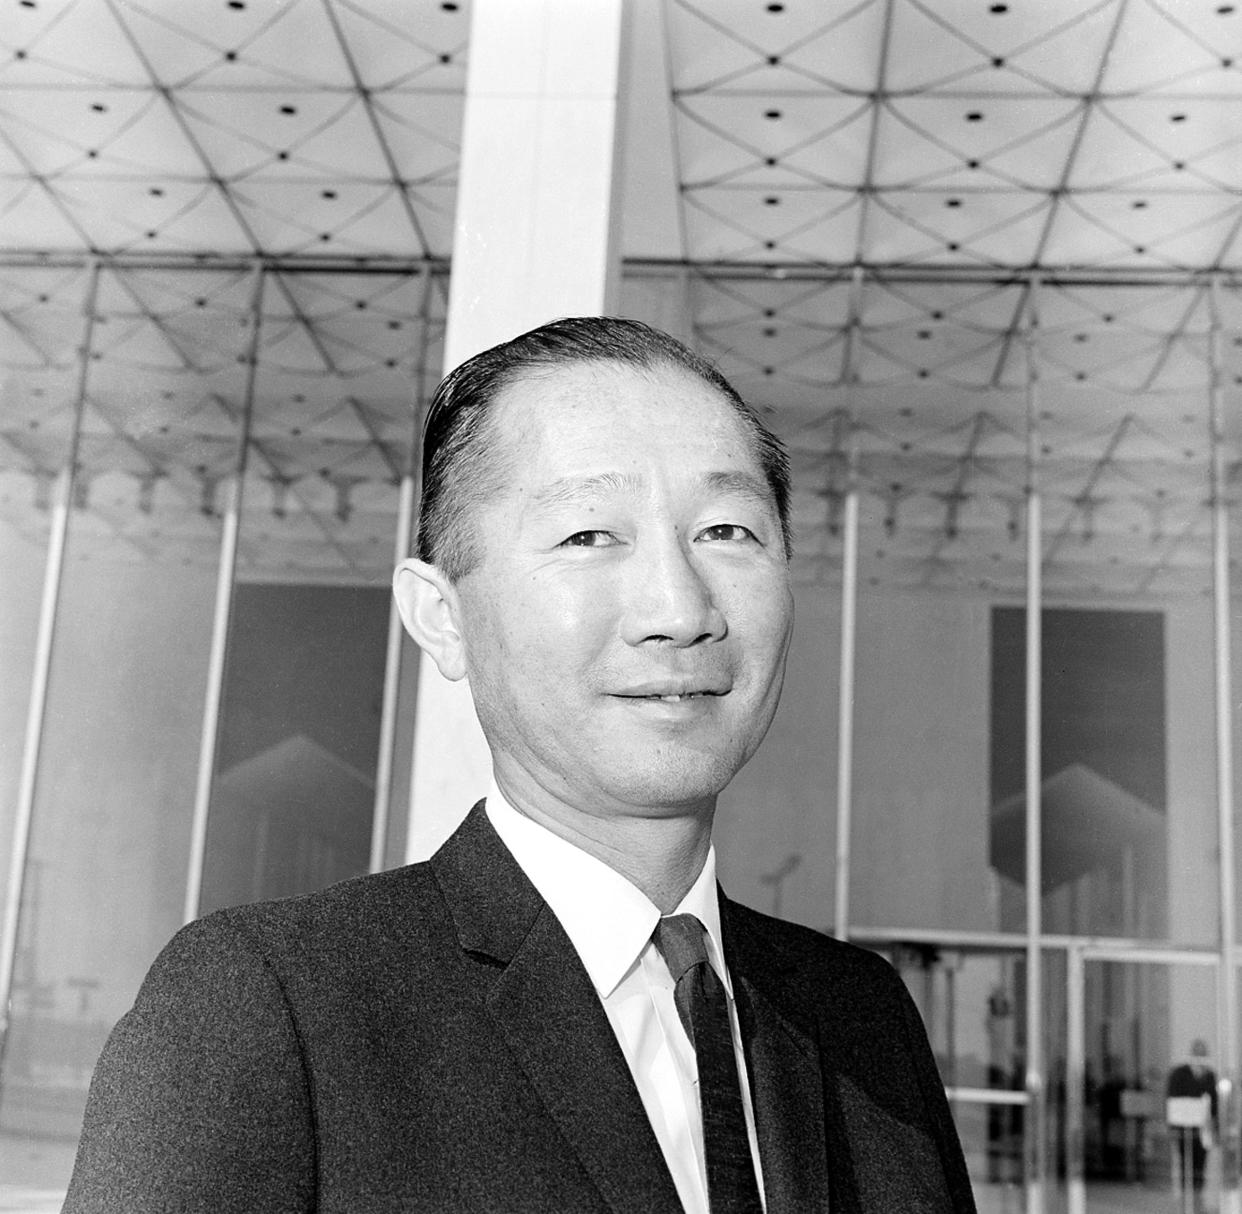 Architect Minoru Yamasaki of Birmingham, Mich., stands in front of the Michigan Consolidated Gas Co., building in Detroit, Mich., on March 23, 1964. (AP)